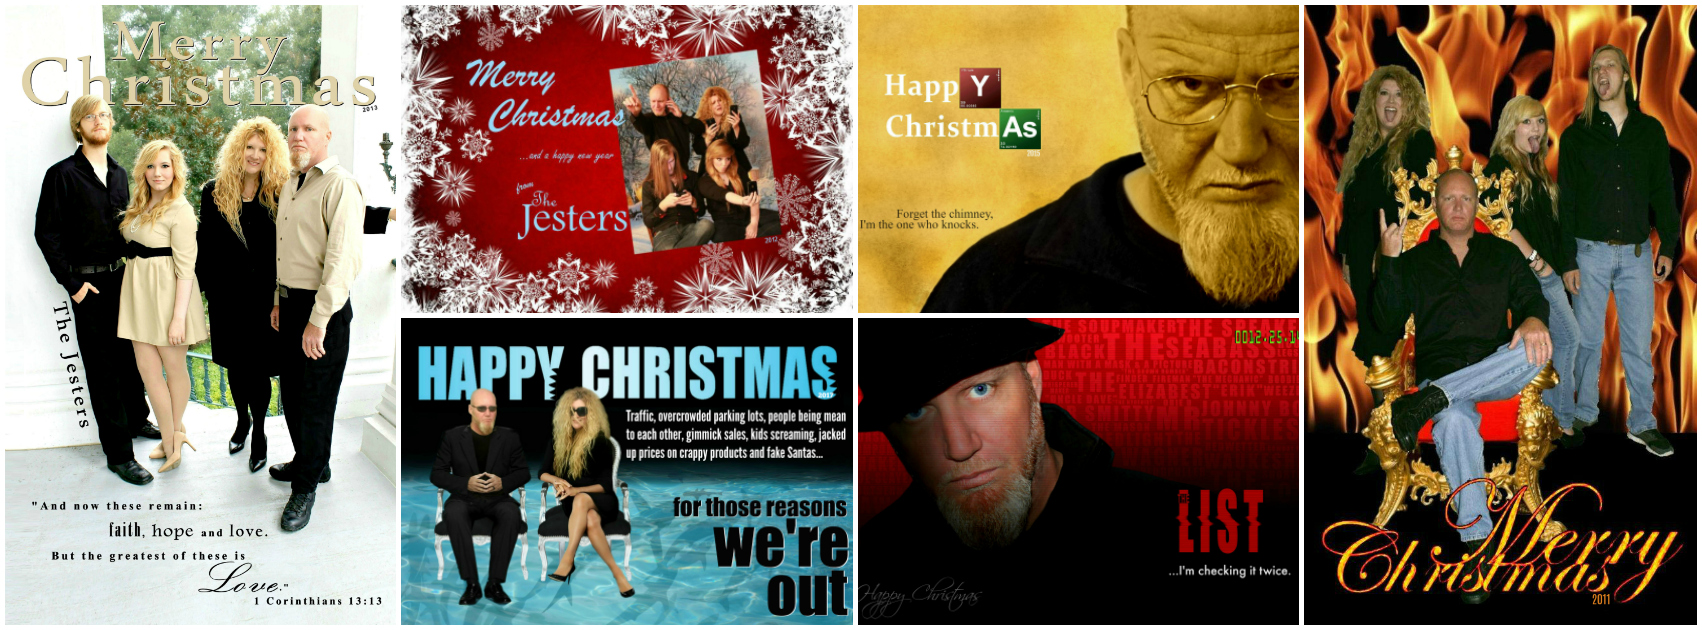 Michelle Jester Family Christmas Cards Funny Happy 4